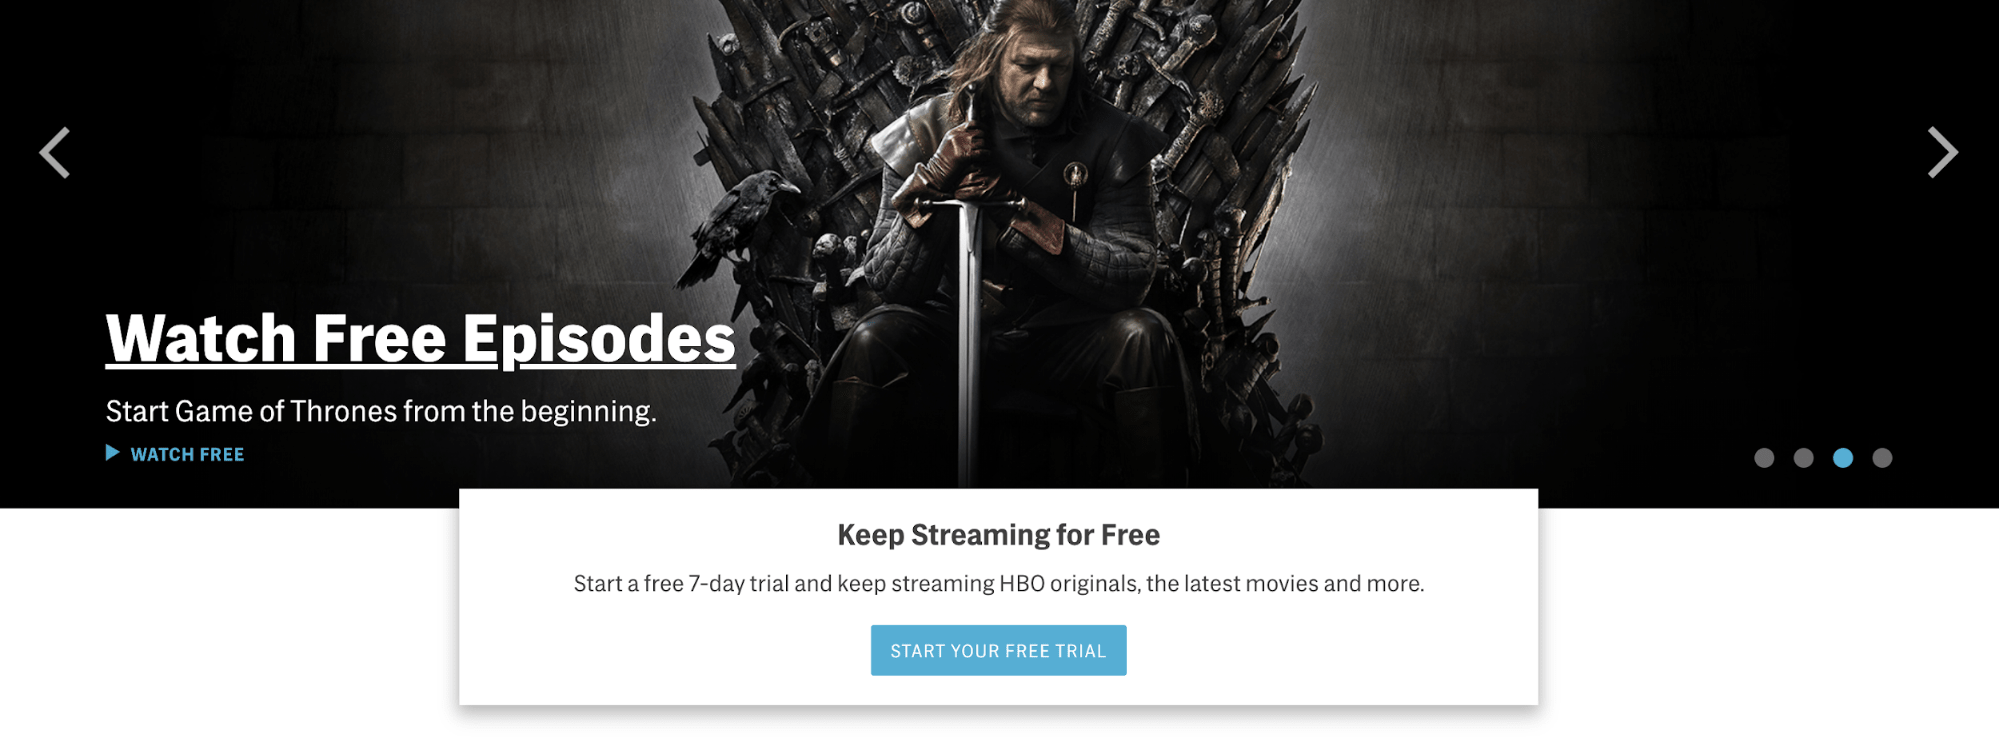 HBO-Example-Stream-Free-Media